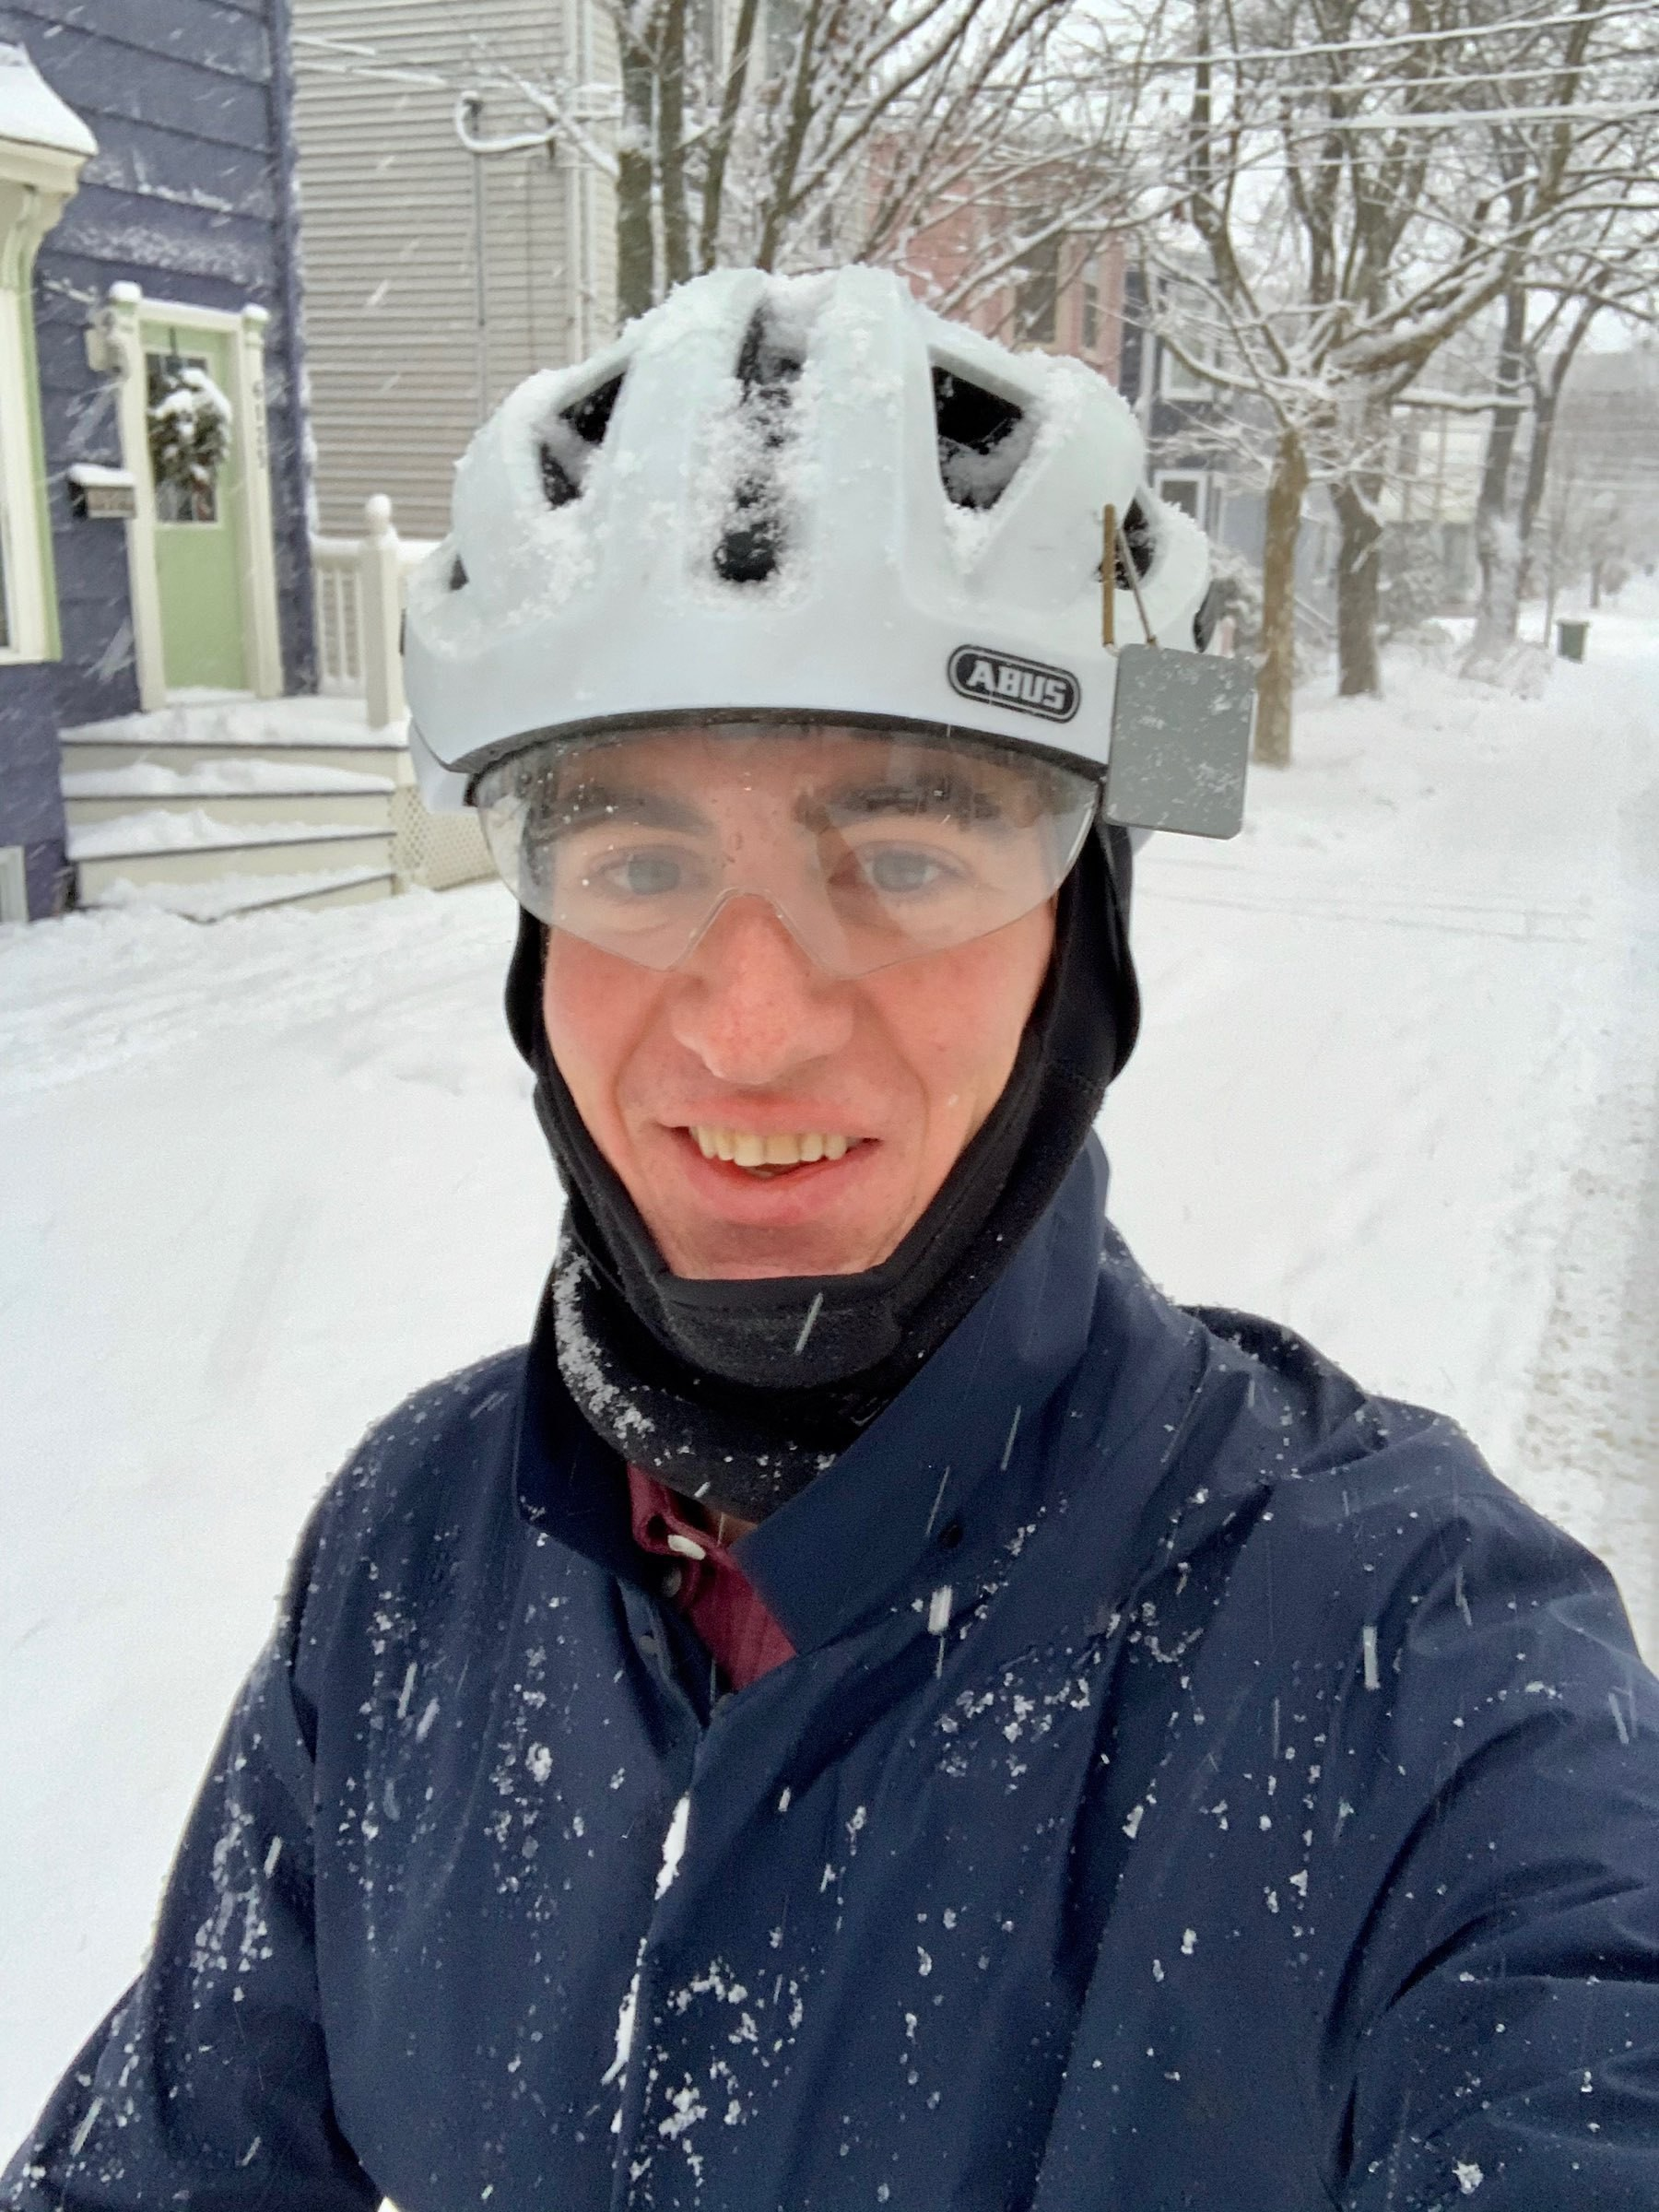 Selfie of a person wearing a bicycle helmet in the snow.